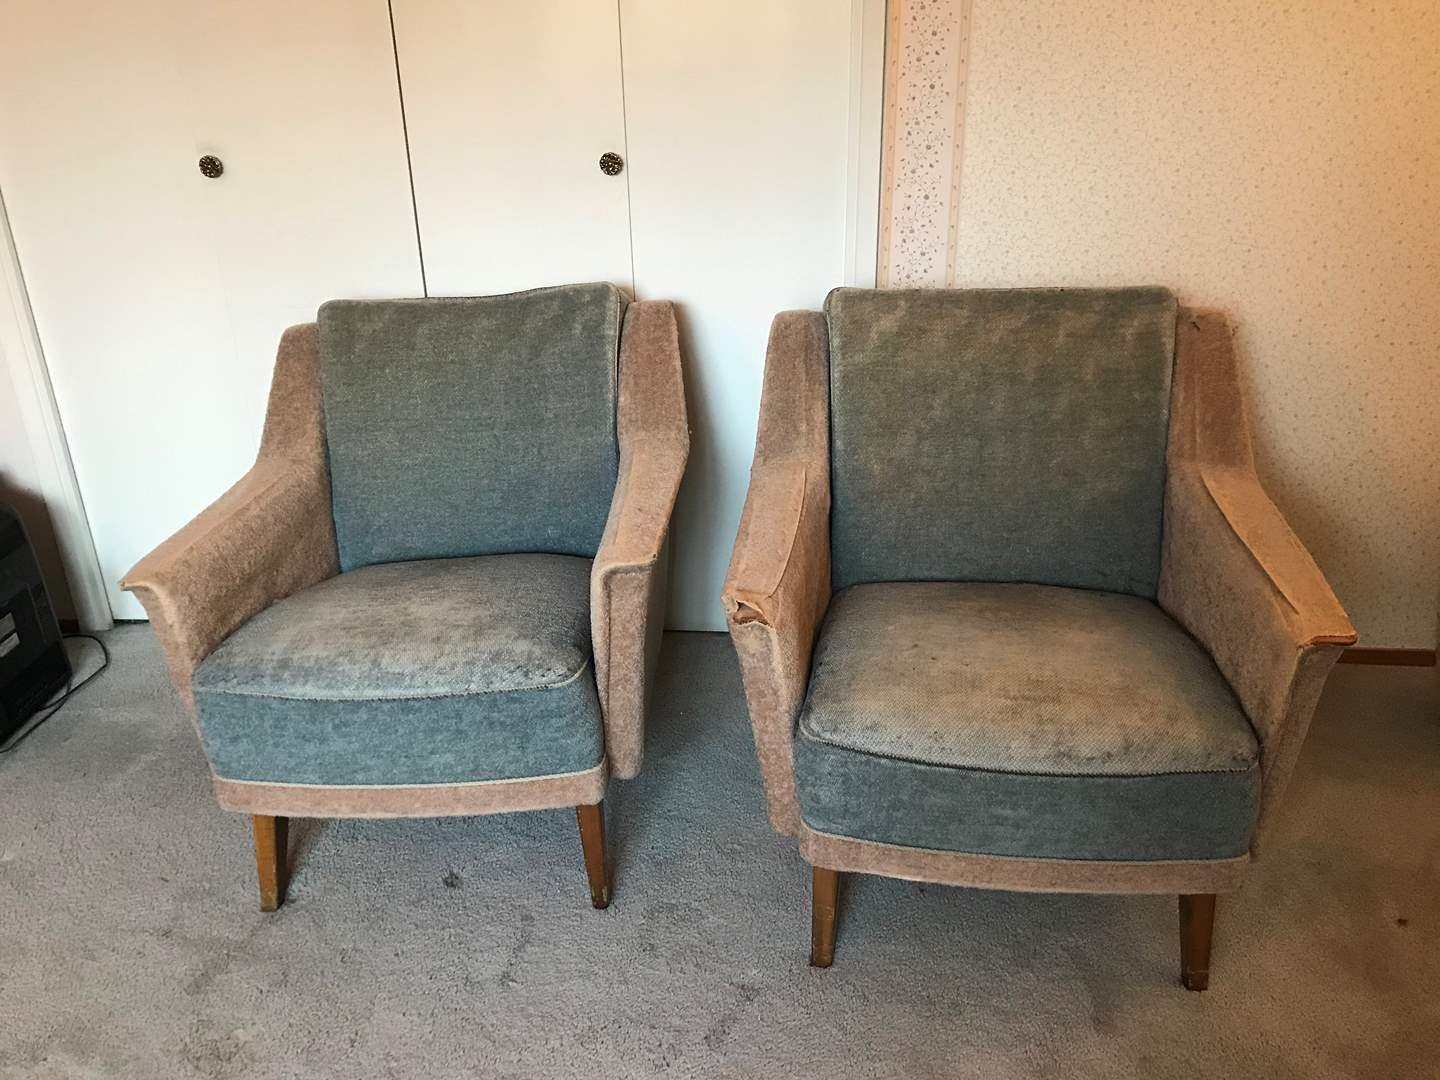 Lot # 117 - Two Matching Vintage Project Chairs - Matches Lot #116 (main image)